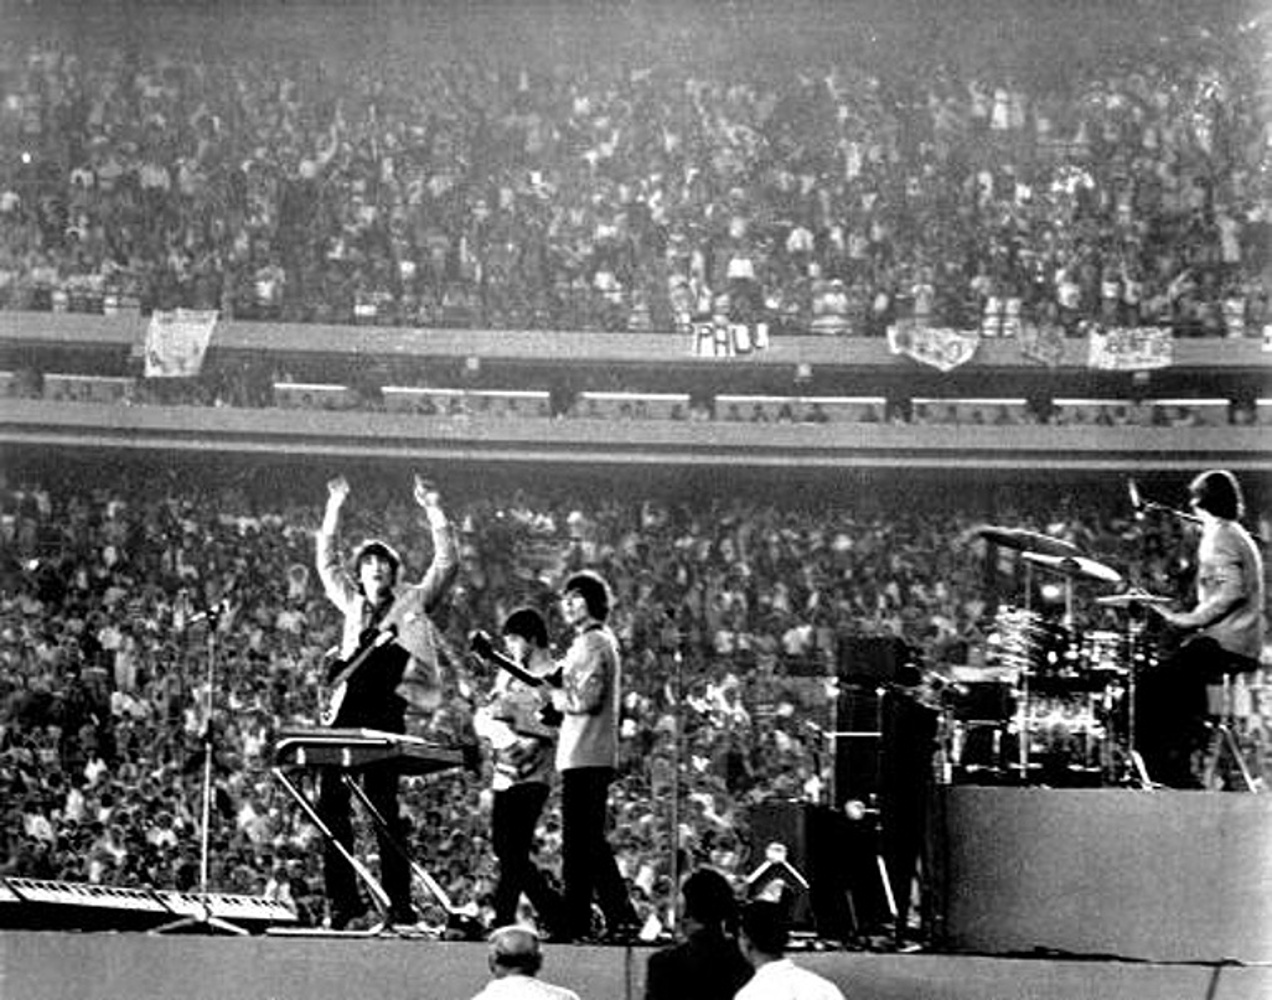 The Beatles at the Shue Stadium / 1965